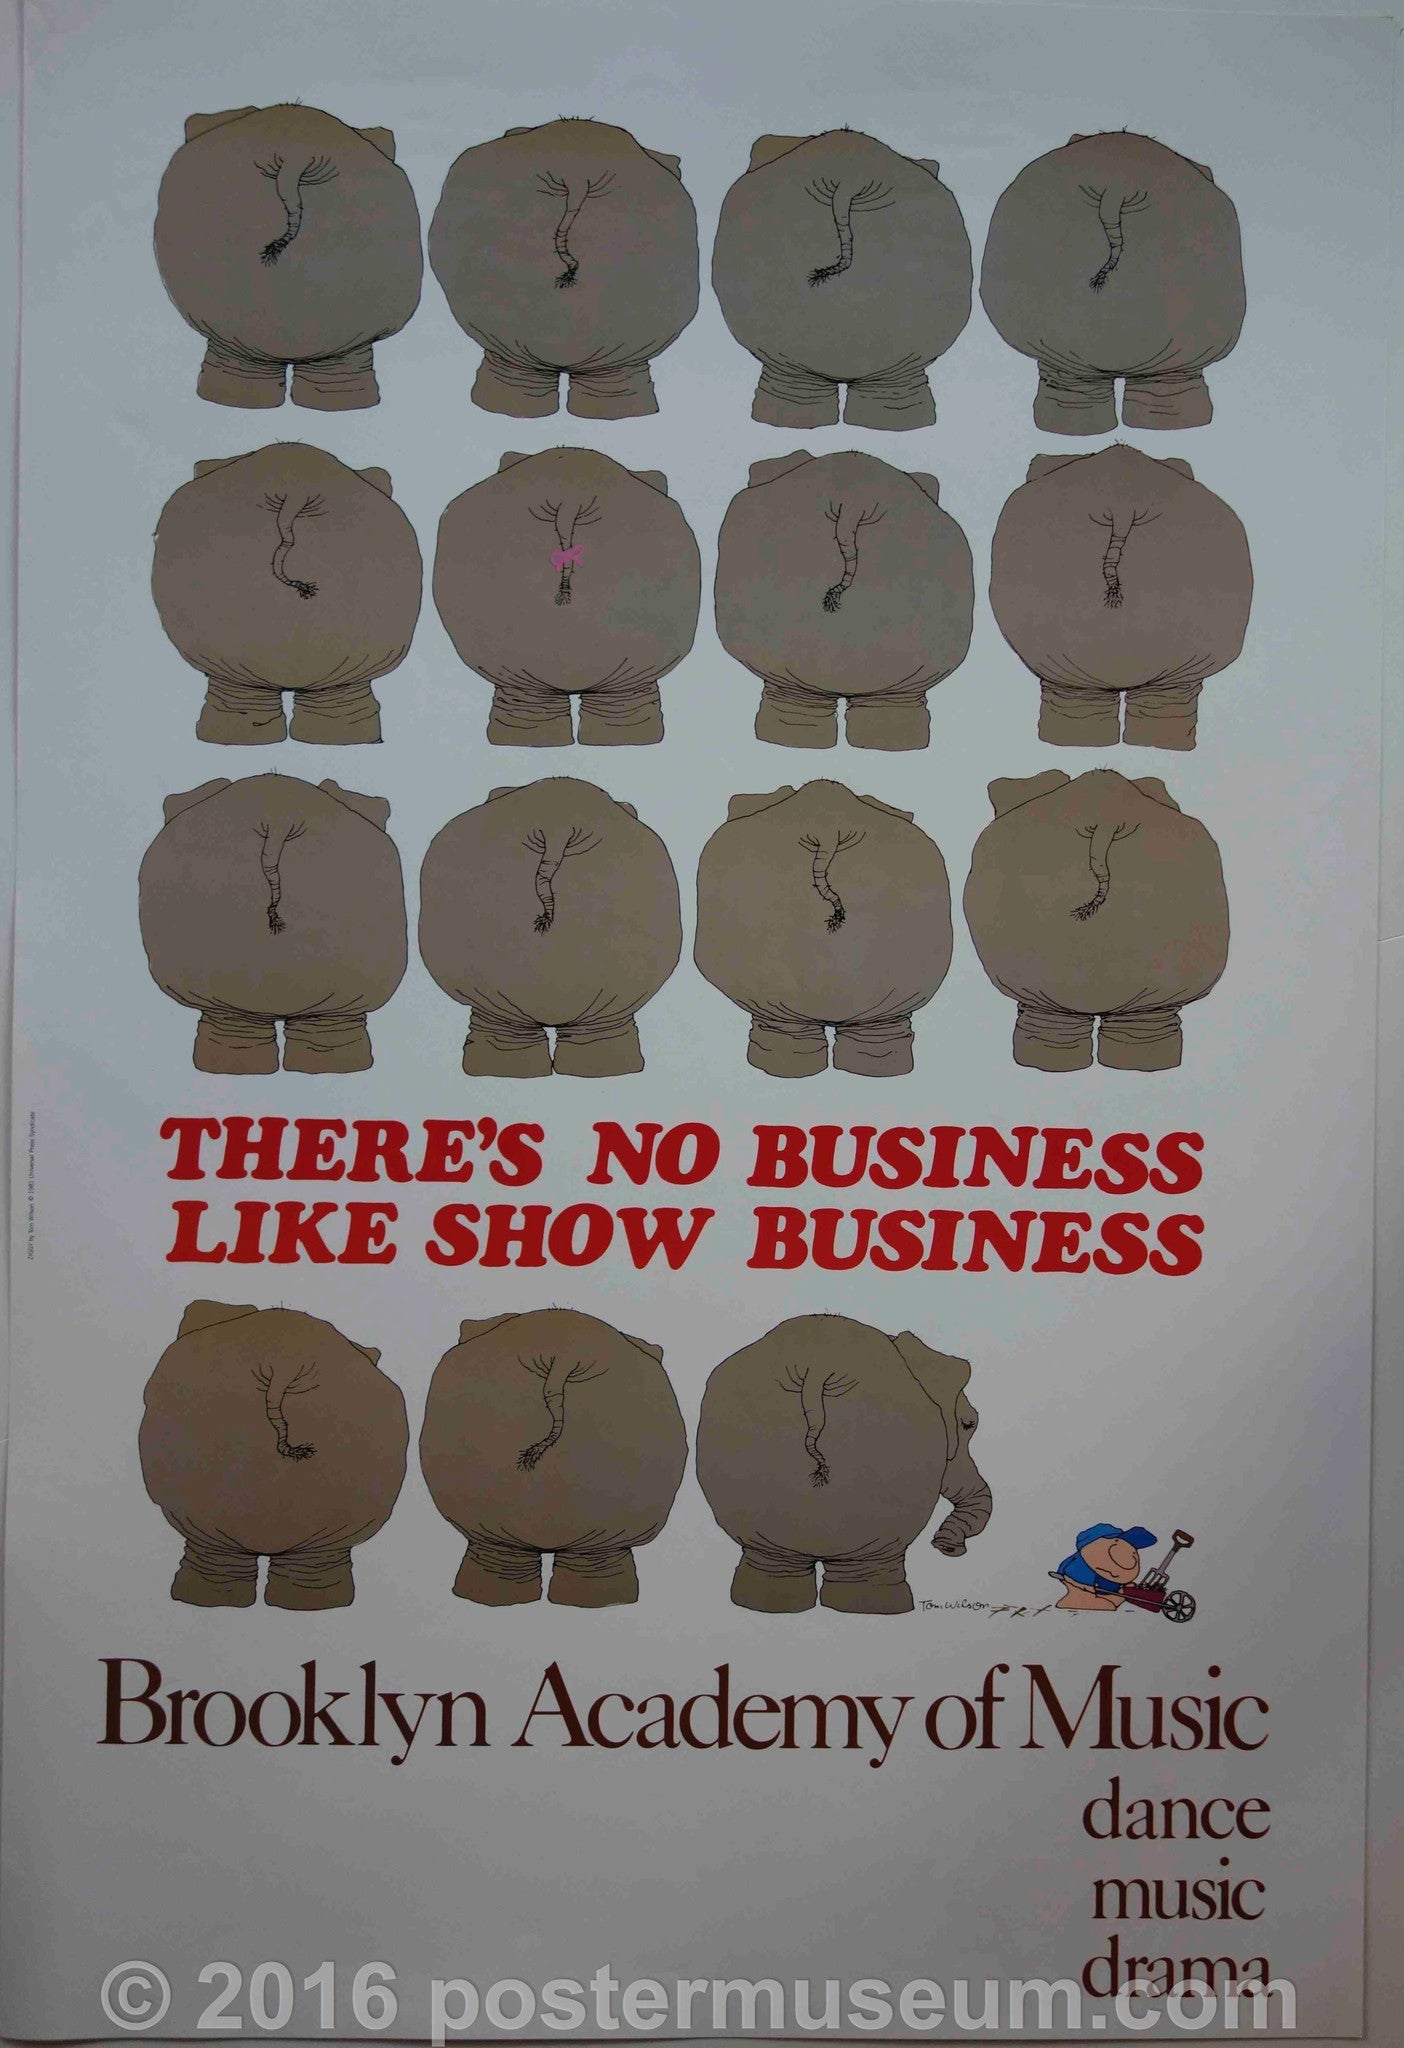 Brooklyn Academy of Music Show Business